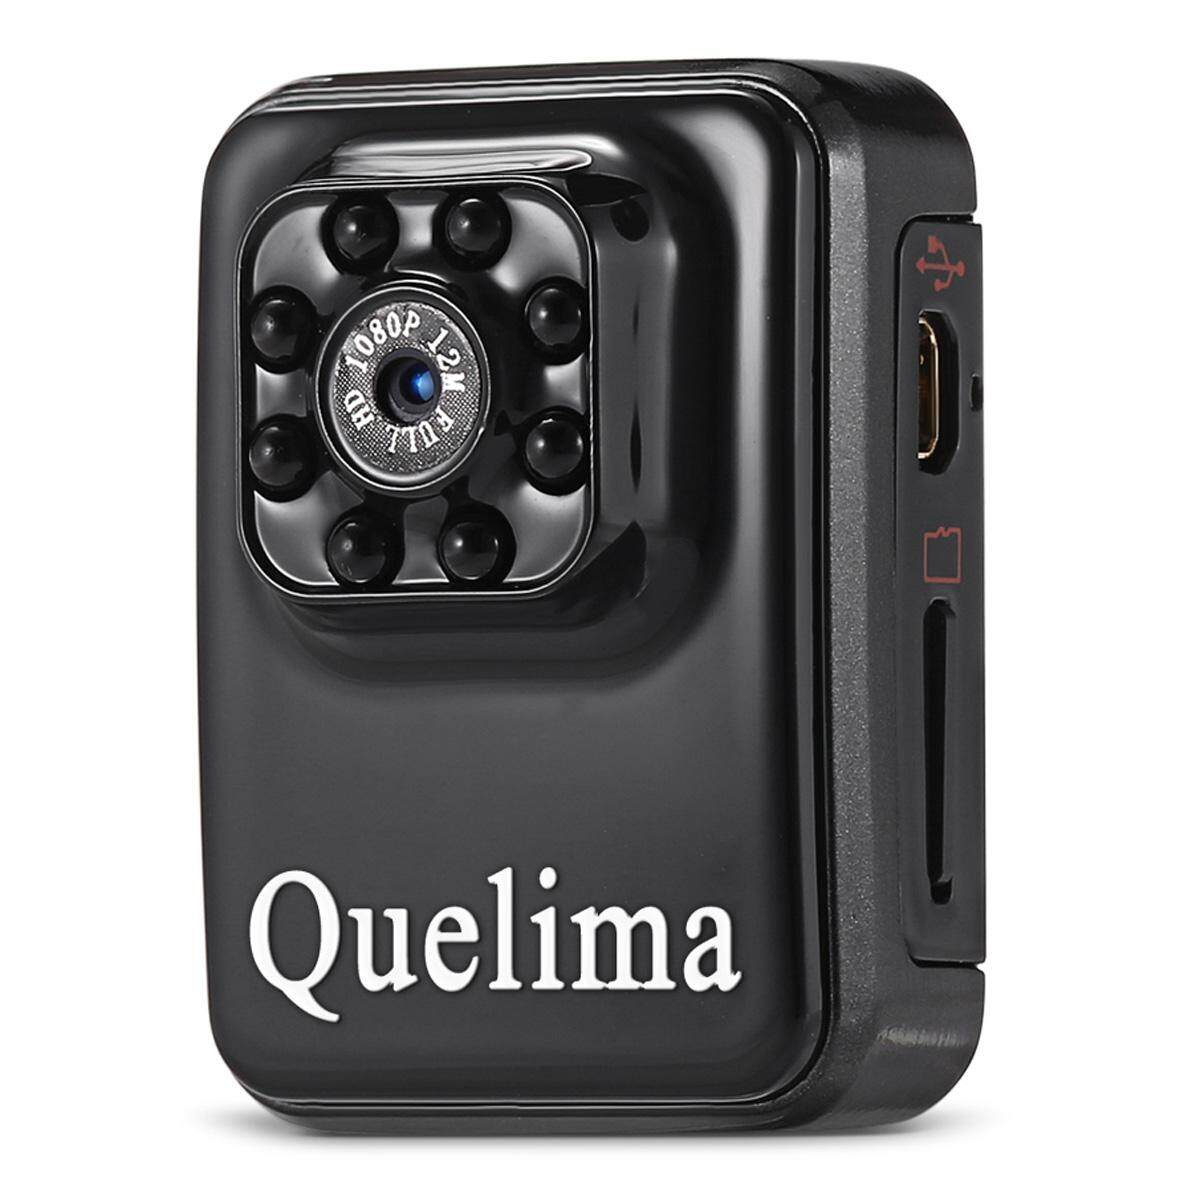 Quelima Wi-Fi Edition Mini Recorder DVR w/ IR Night Vision - Black - intl